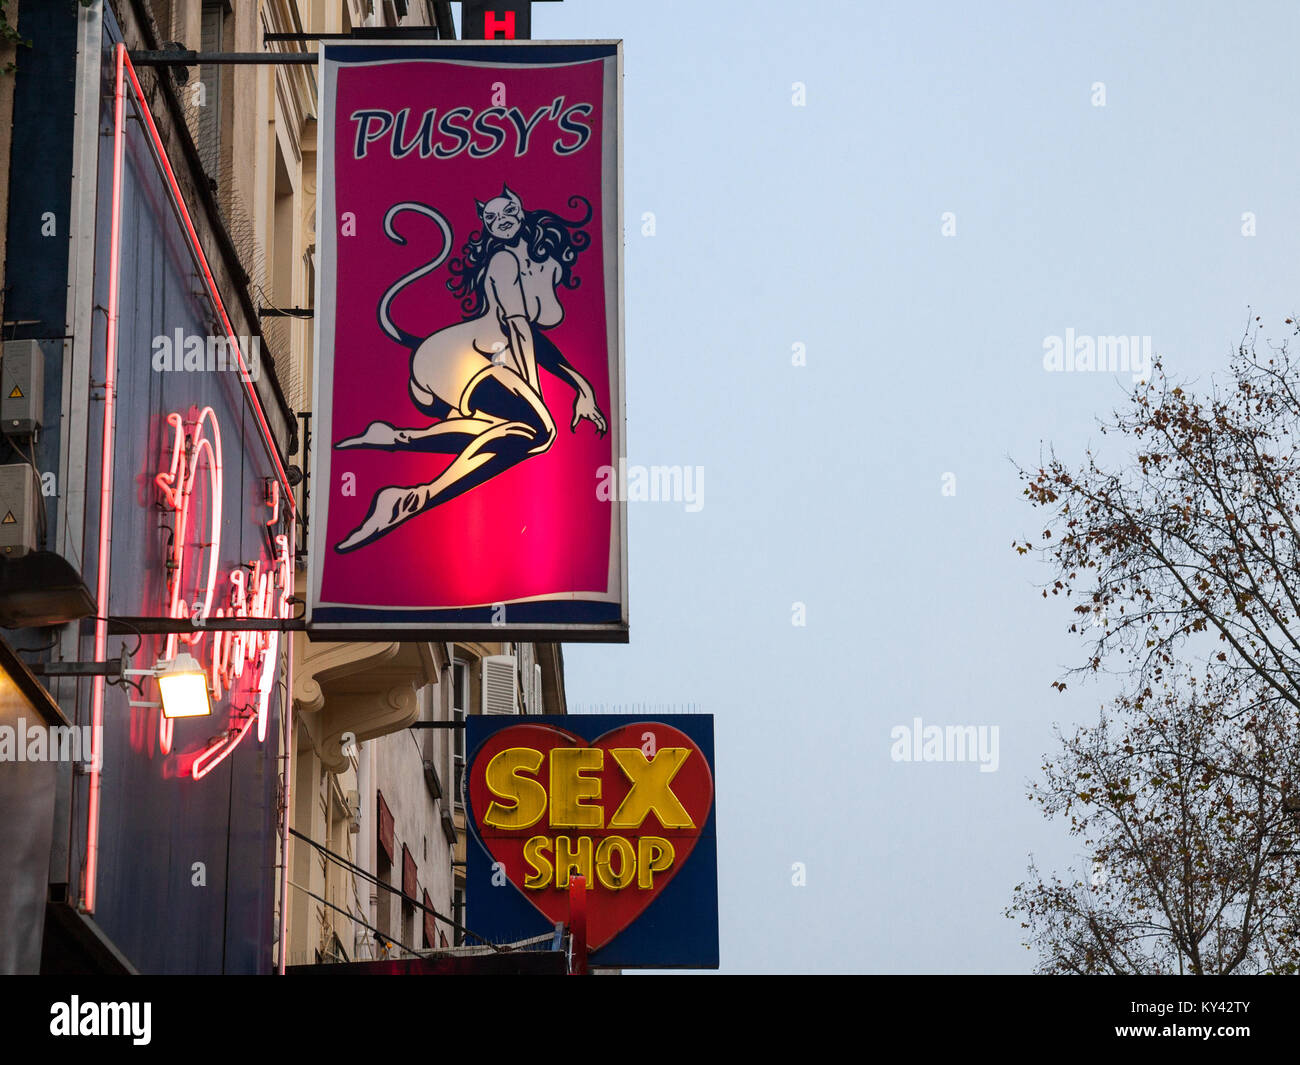 PARIS, FRANCE - DECEMBER 19, 2017: Sex Shop lights and front stores in the red light district of Paris, Pigalle. - Stock Image